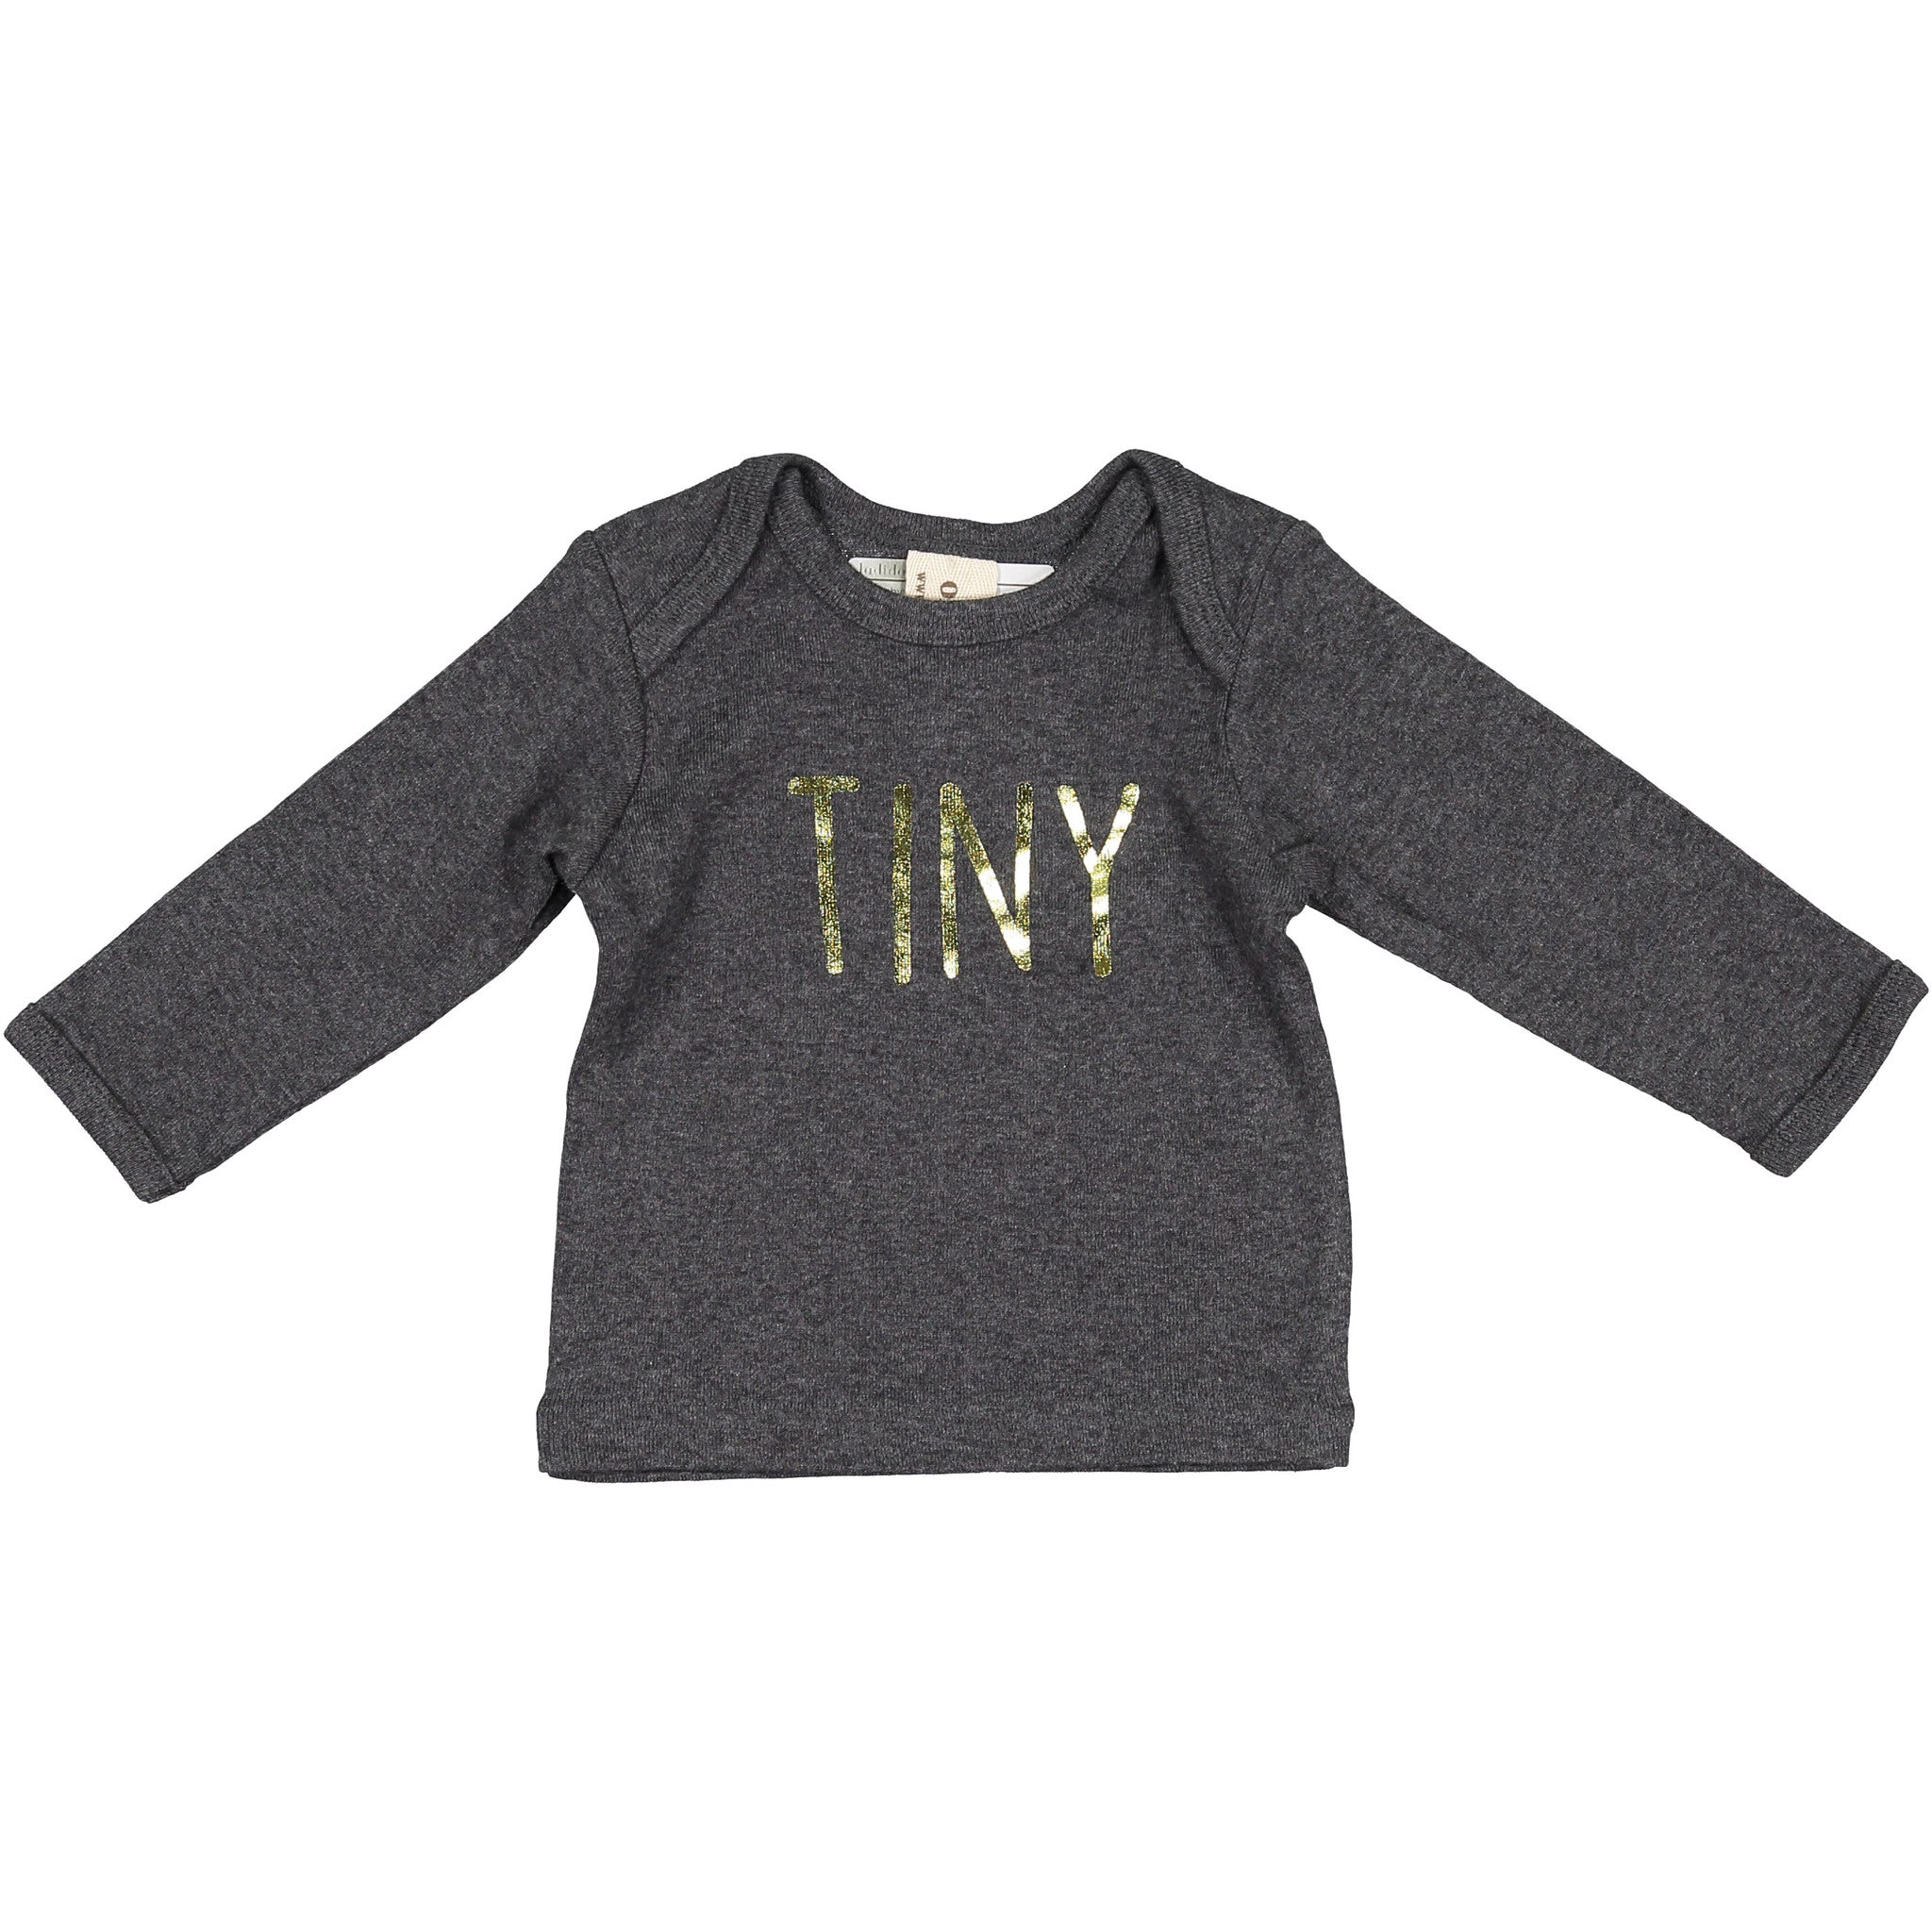 Oh Baby Charcoal 'Tiny' Set